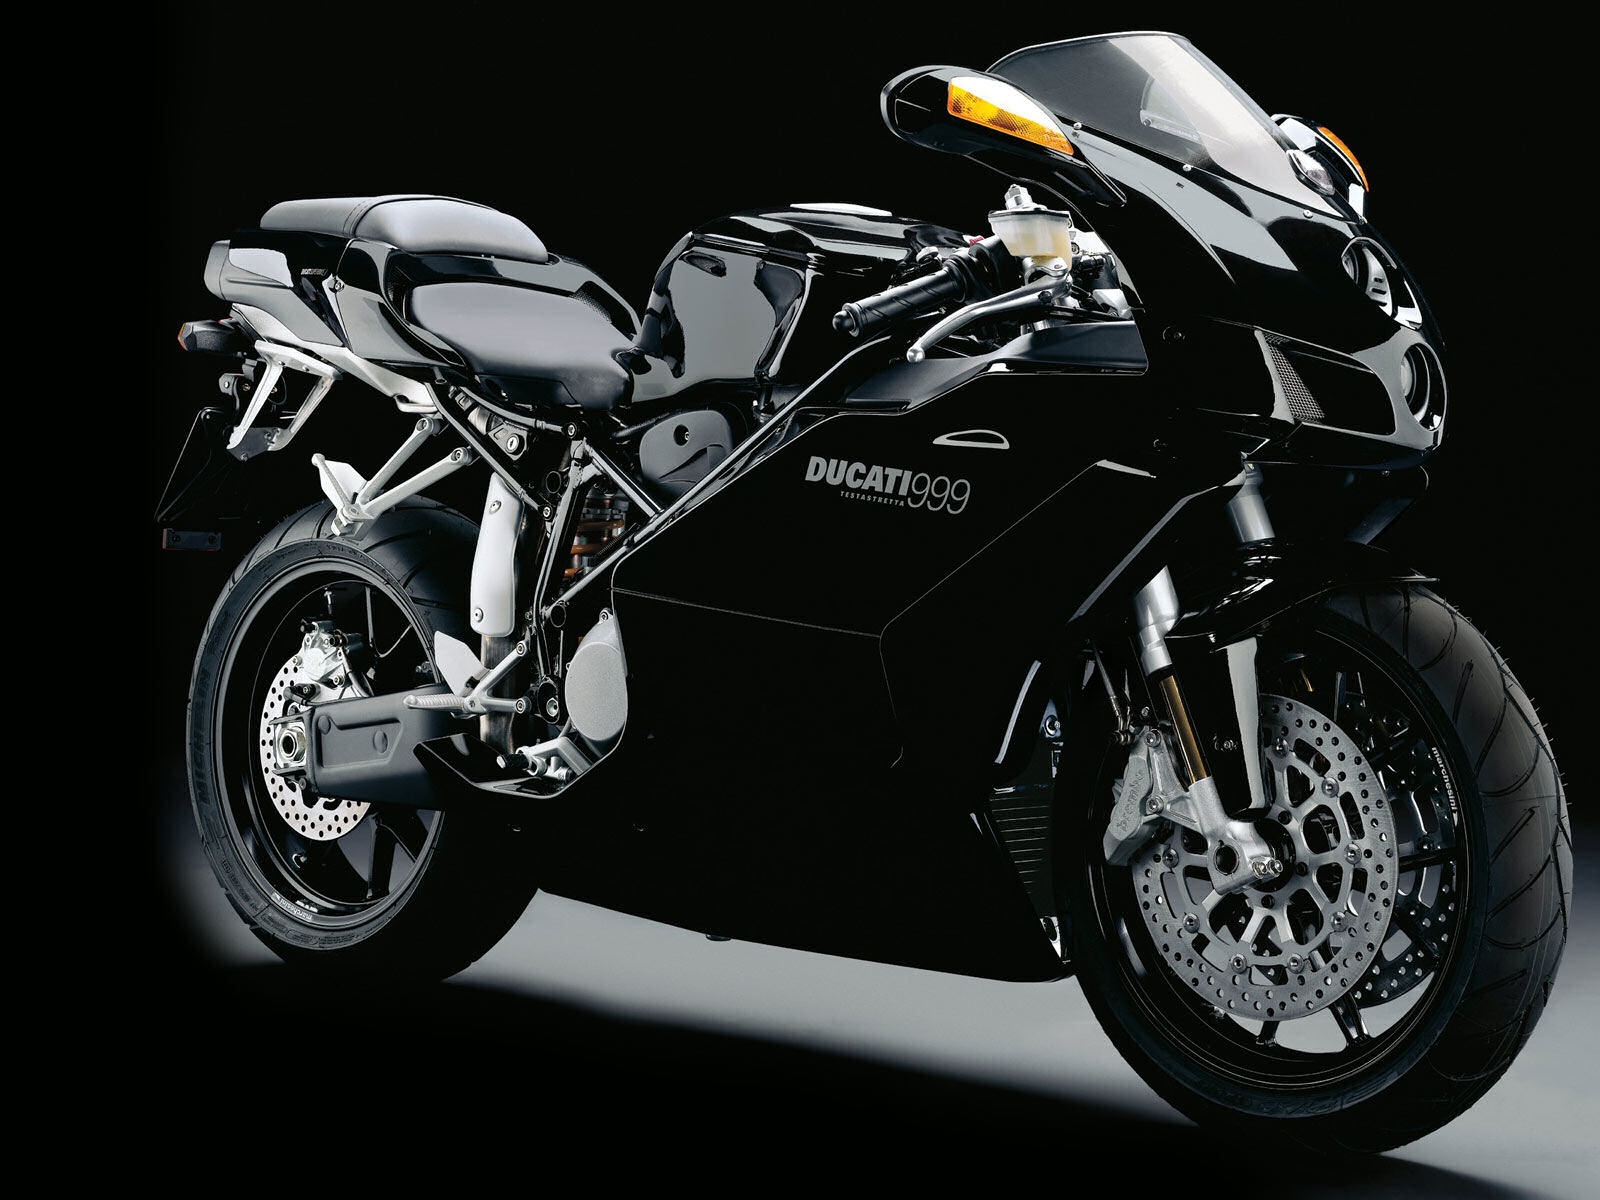 Tags hd top bikes wallpapers Top hd bikes wallpapers 1600x1200